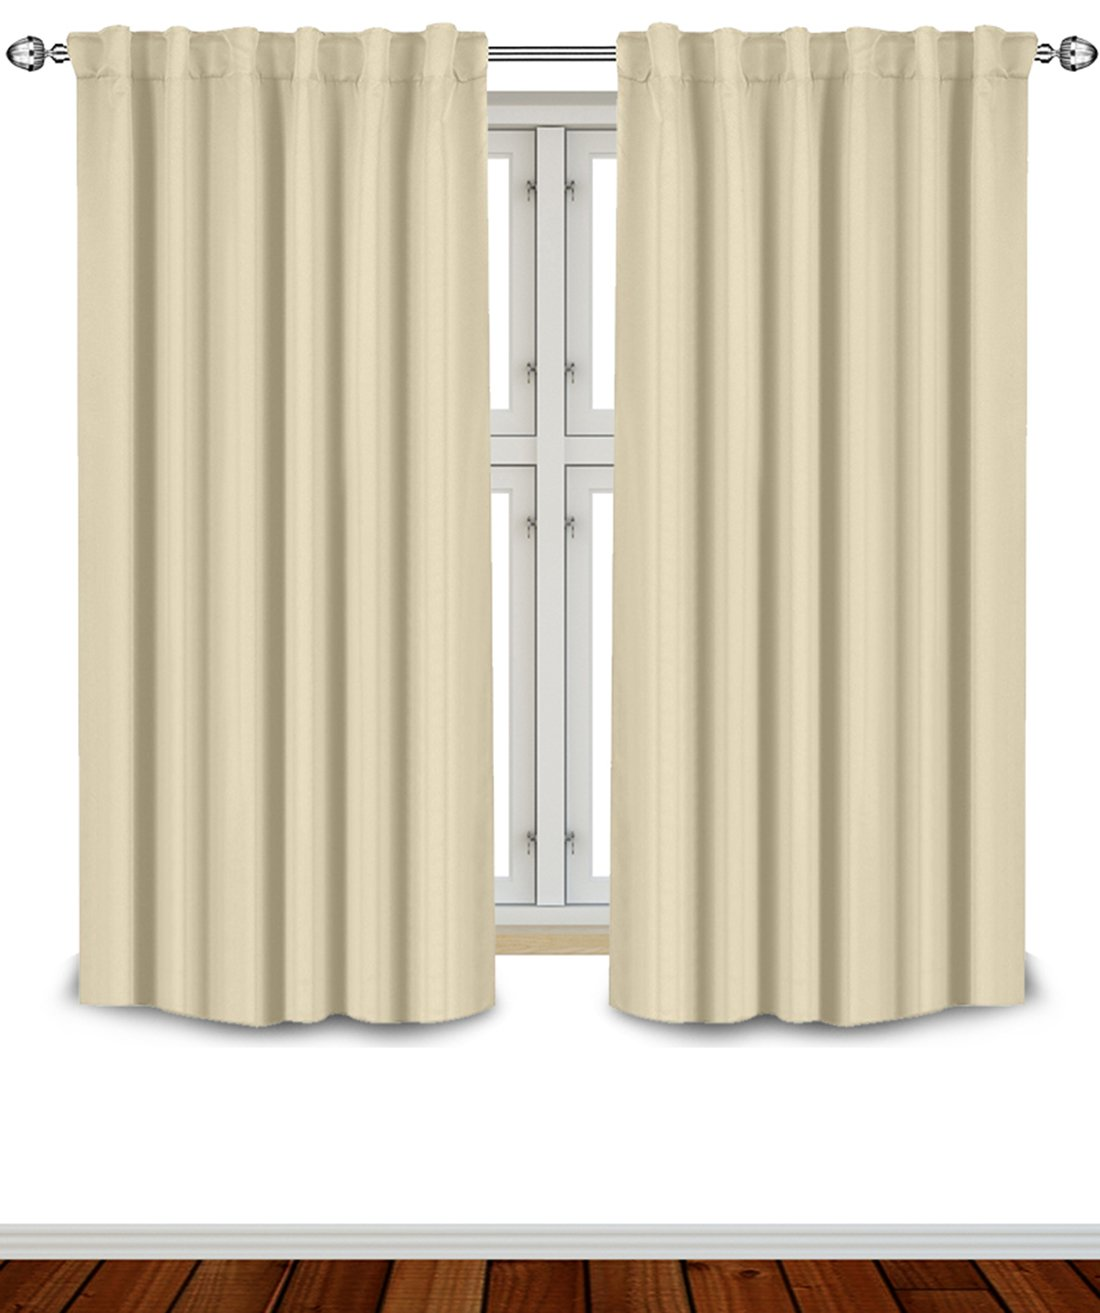 Blackout Room Darkening Curtains Window Panel Drapes - Beige Color 2 Panel Set